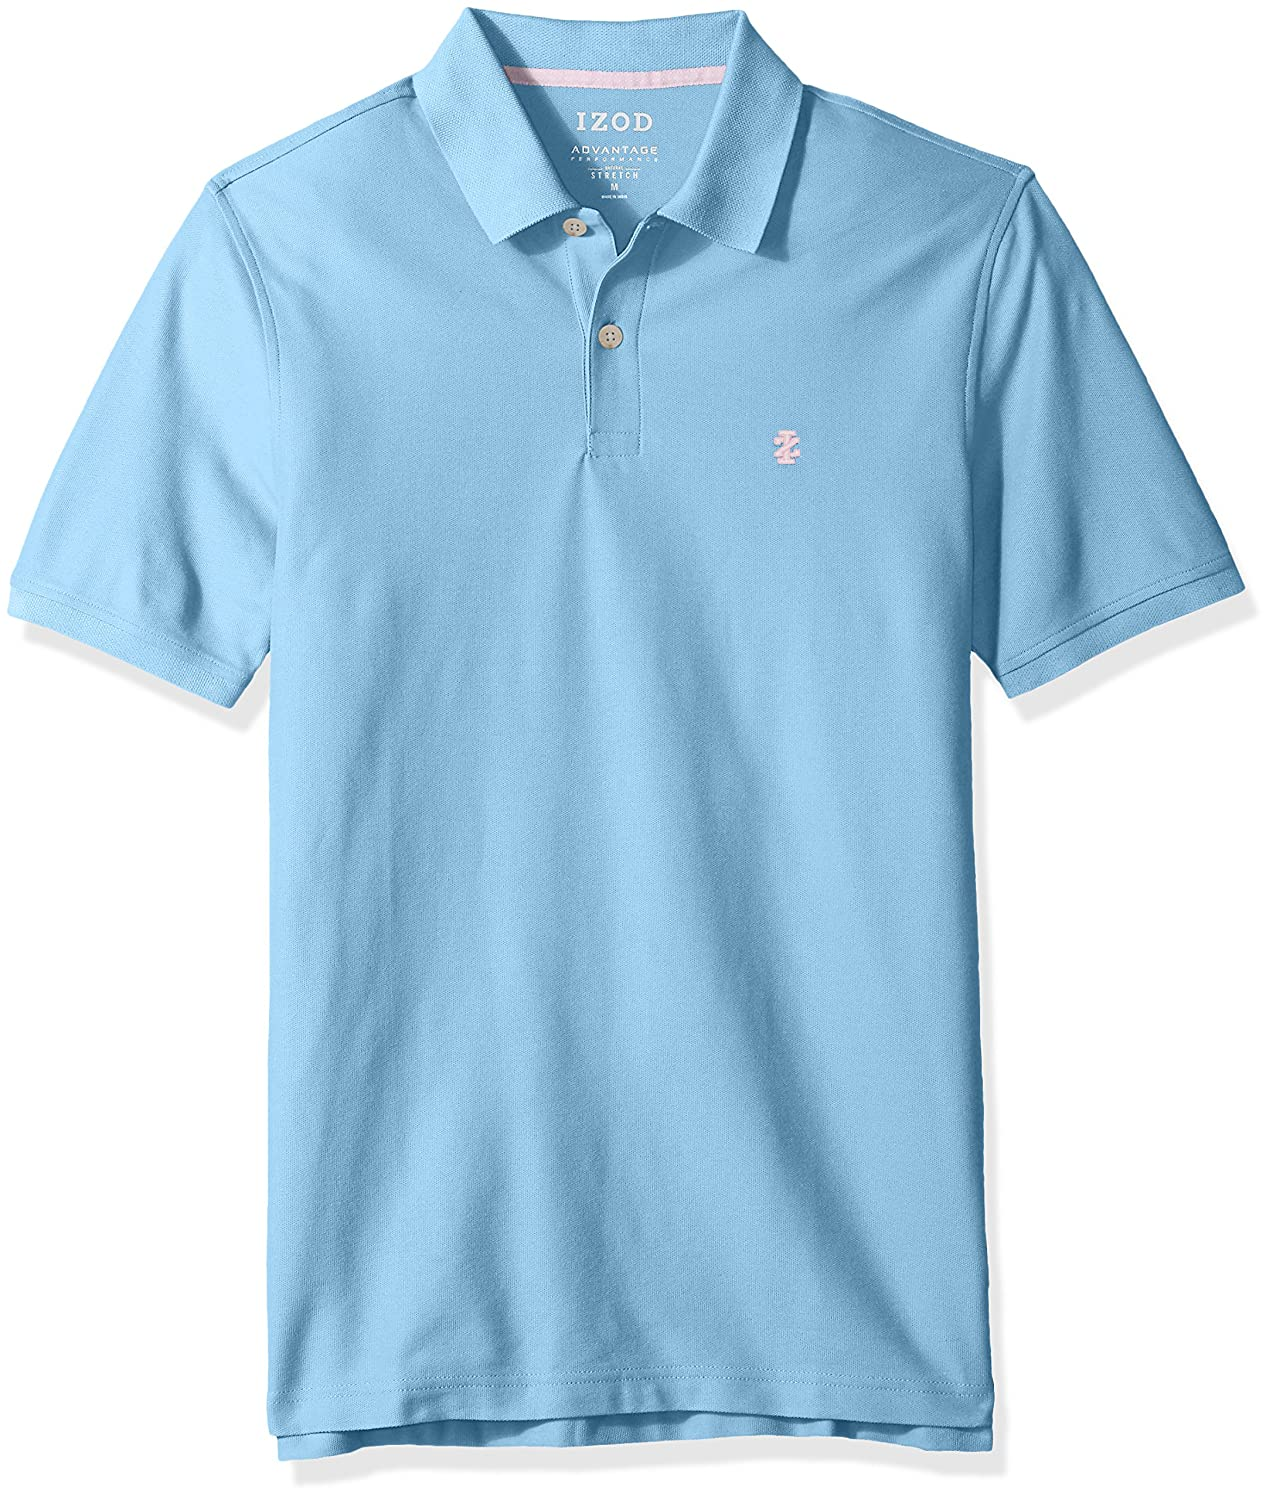 Izod Men's Short Sleeve Advantage Solid Pique Polo 45SK350